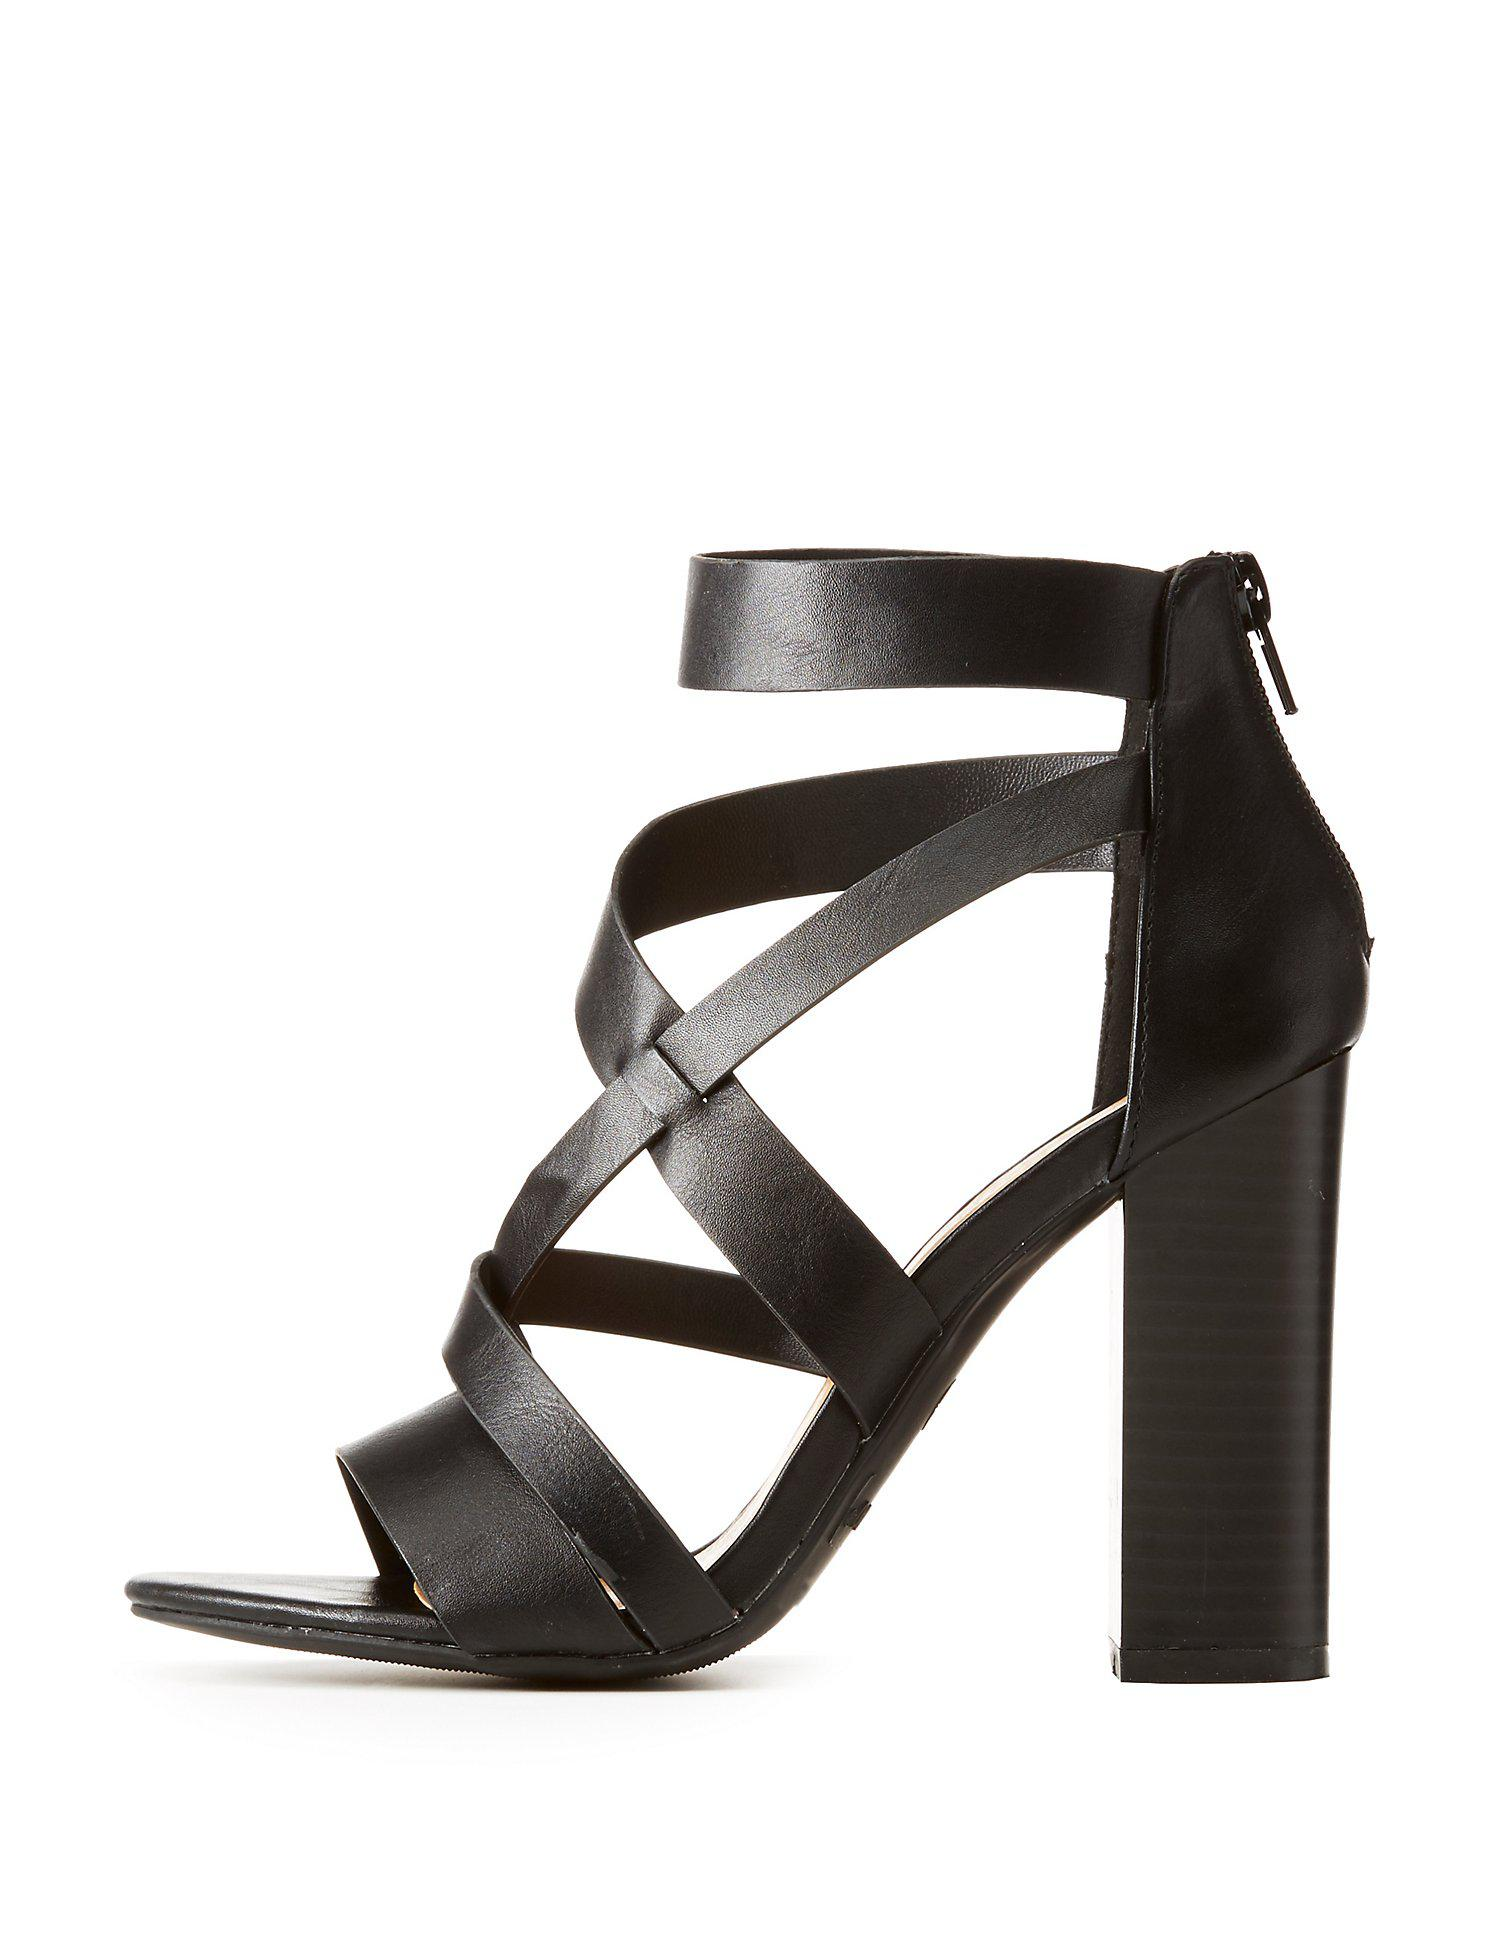 Yoshi Leather Dress Sandals vWML13EG2c